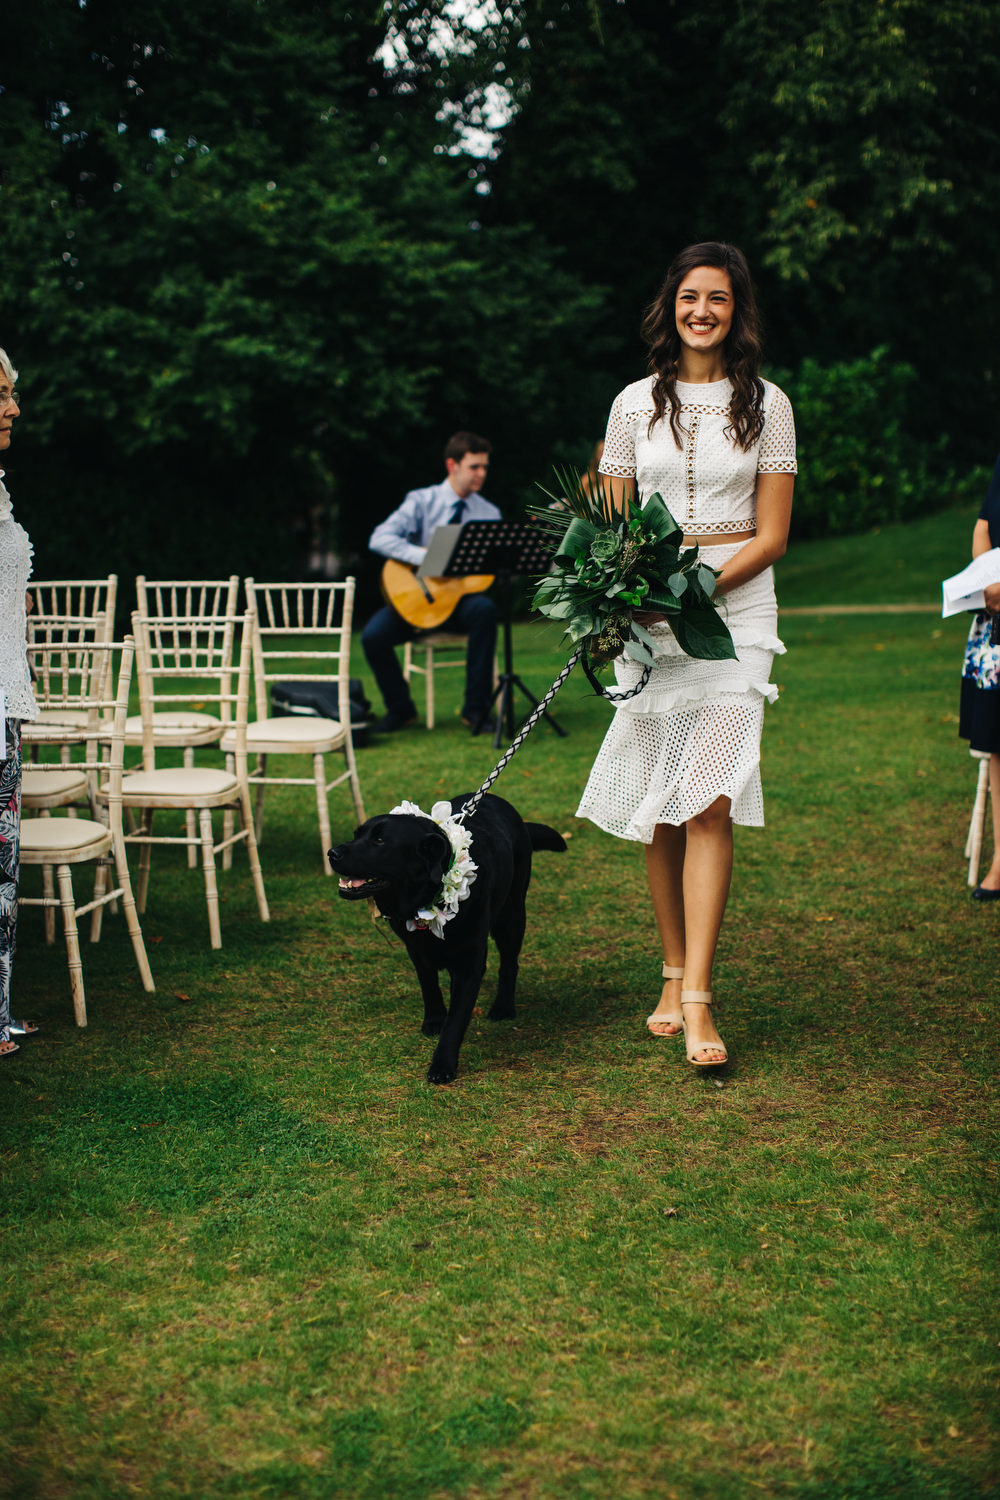 Dog Pet Aisle Ceremony Deer Park Country House Hotel Wedding Richard Skins Photography